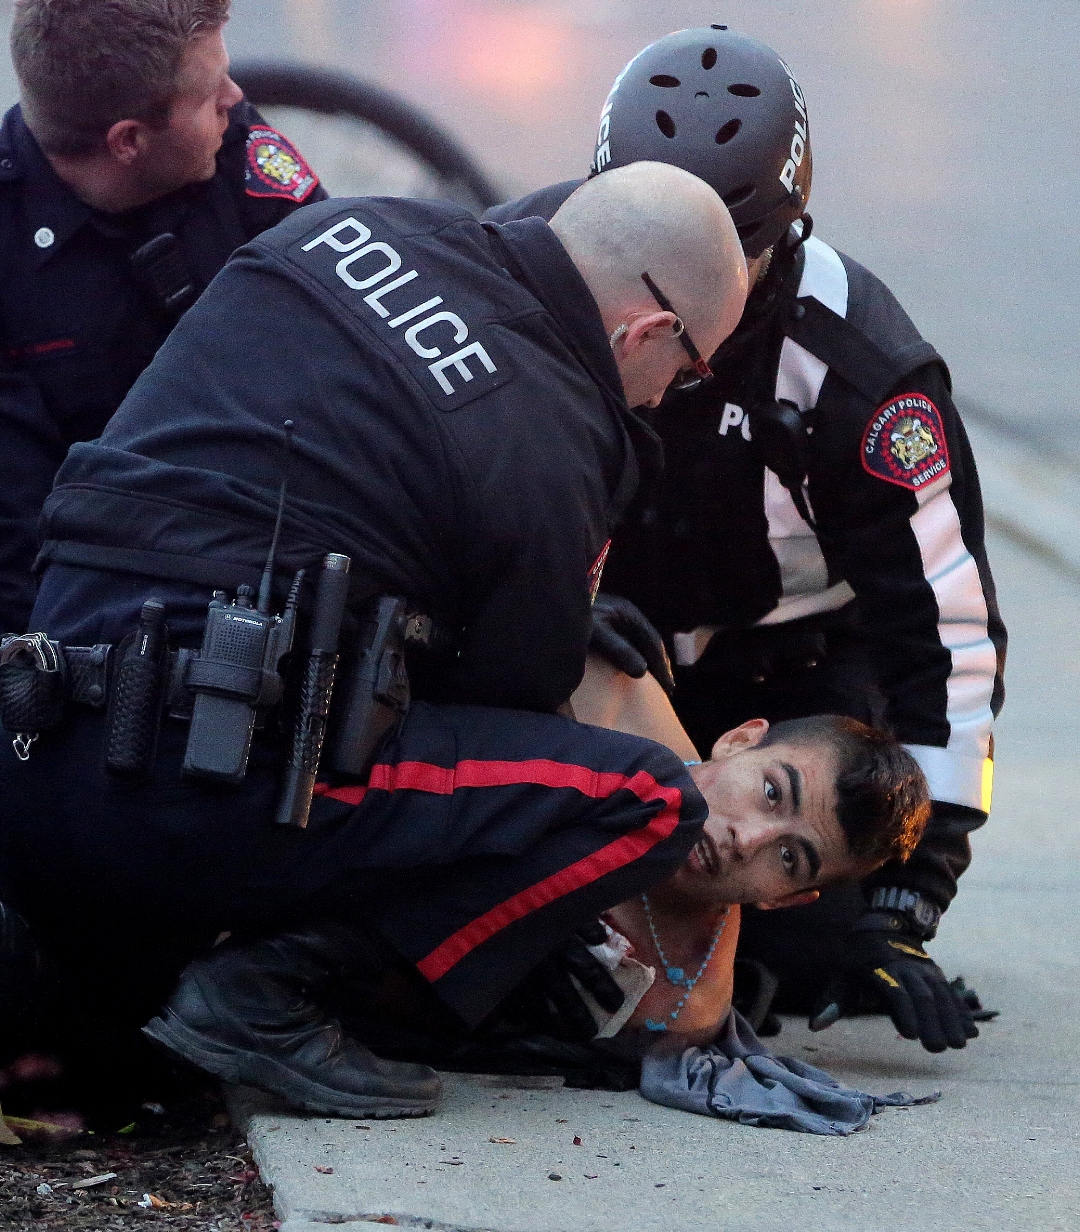 Police try to stabilize a male shot by police by putting pressure on the wound as they wait for medics to arrive after an incident in front of the drop in centre in downtown Calgary on Tuesday, November 3, 2015. This male was a passenger in a stolen vehicle that attempted to run over medics and police officers at an accident scene they had caused moments earlier. Police opened fire on the truck wounding this individual. A female, who was also in the vehicle was arrested with this male after the driver dumped the truck and ran a few blocks away. The driver of the vehicle fled on foot and was still at large.